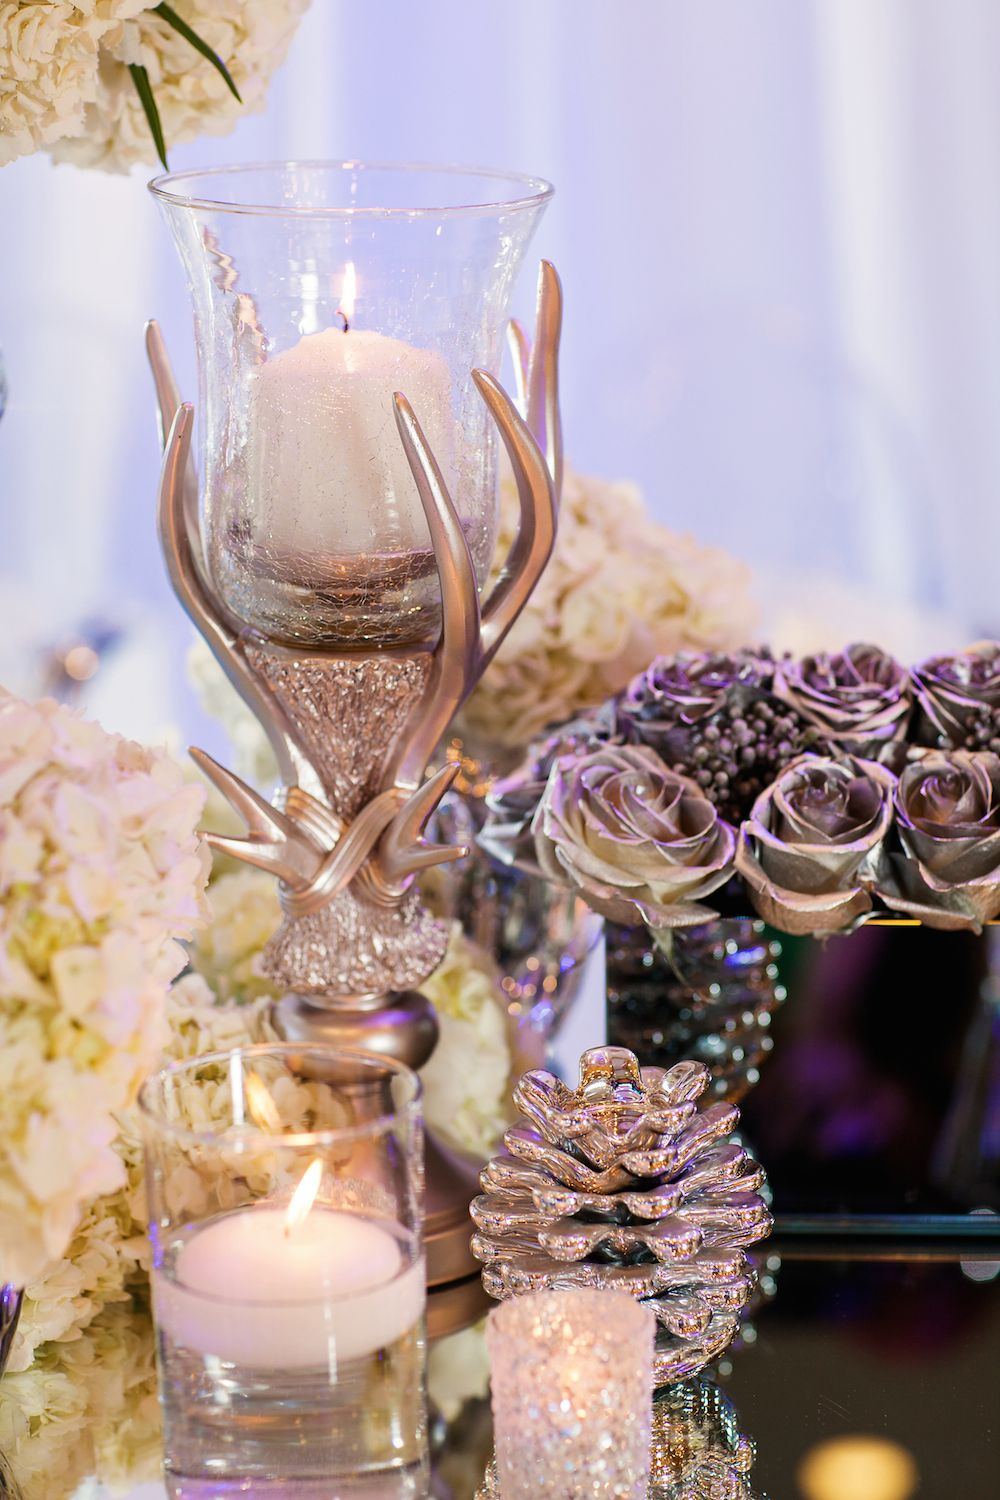 Wedding decorations gold and white december 2018 The Snow Glows White On This FrozenInspired Wedding  December